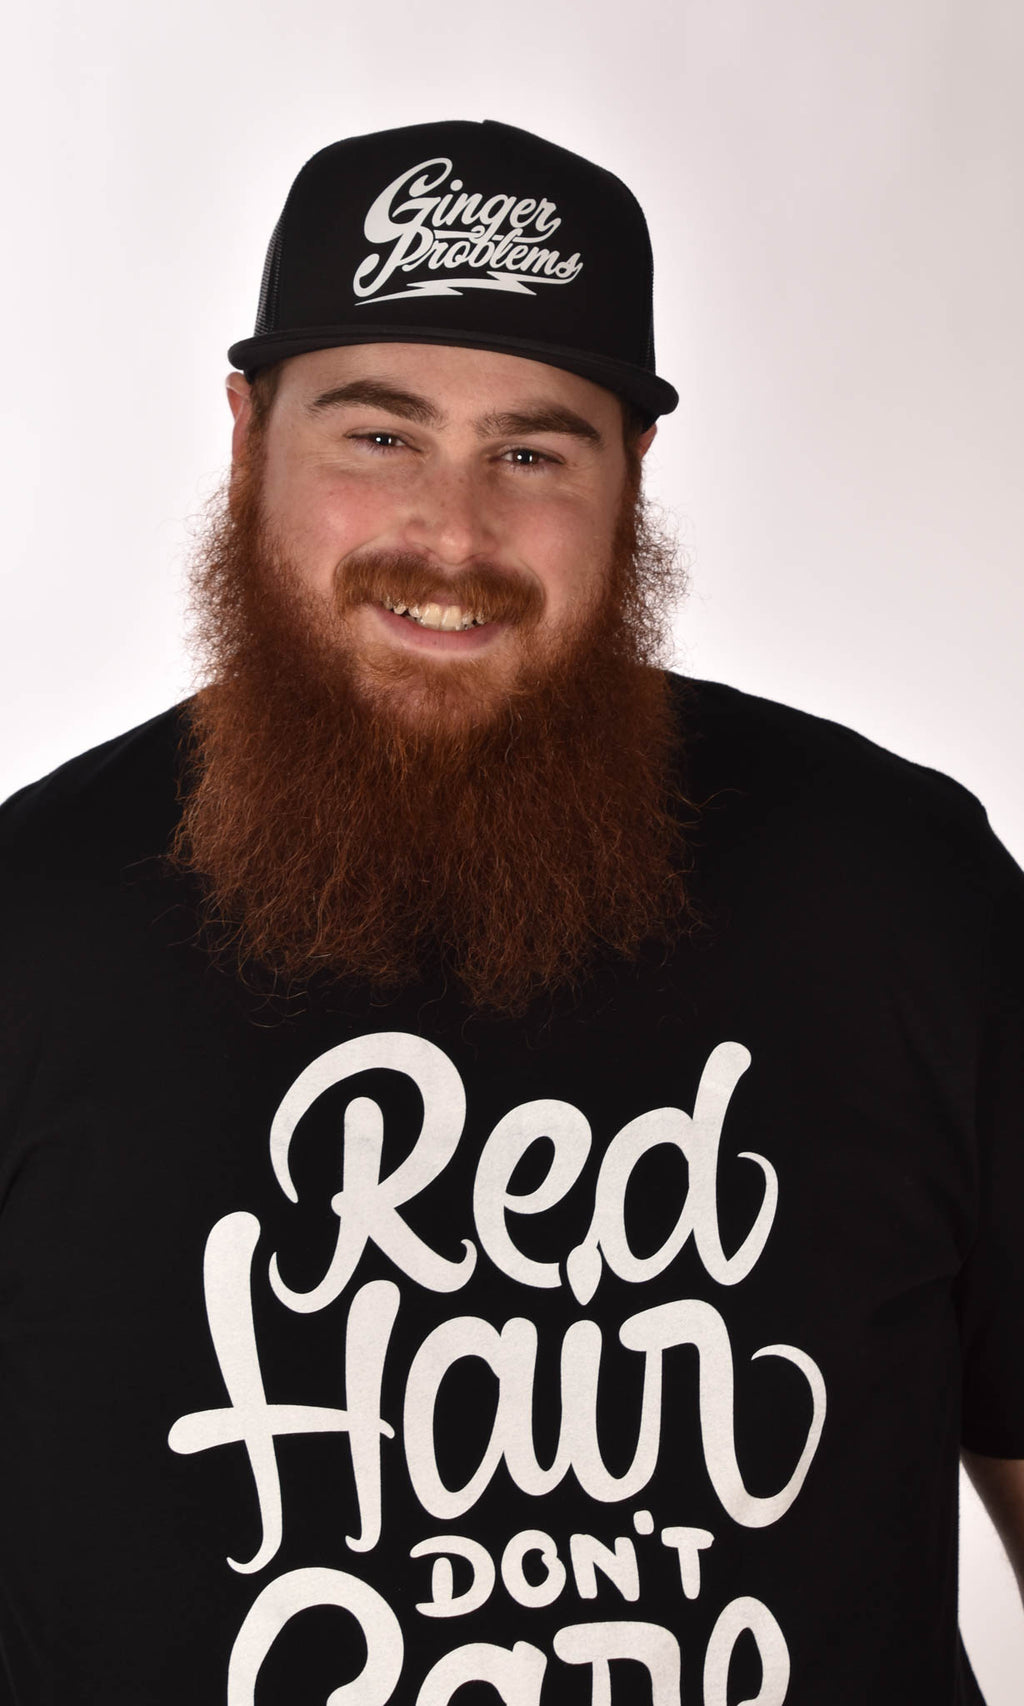 Red Hair Don't Care Swirl Tee Ginger Problems